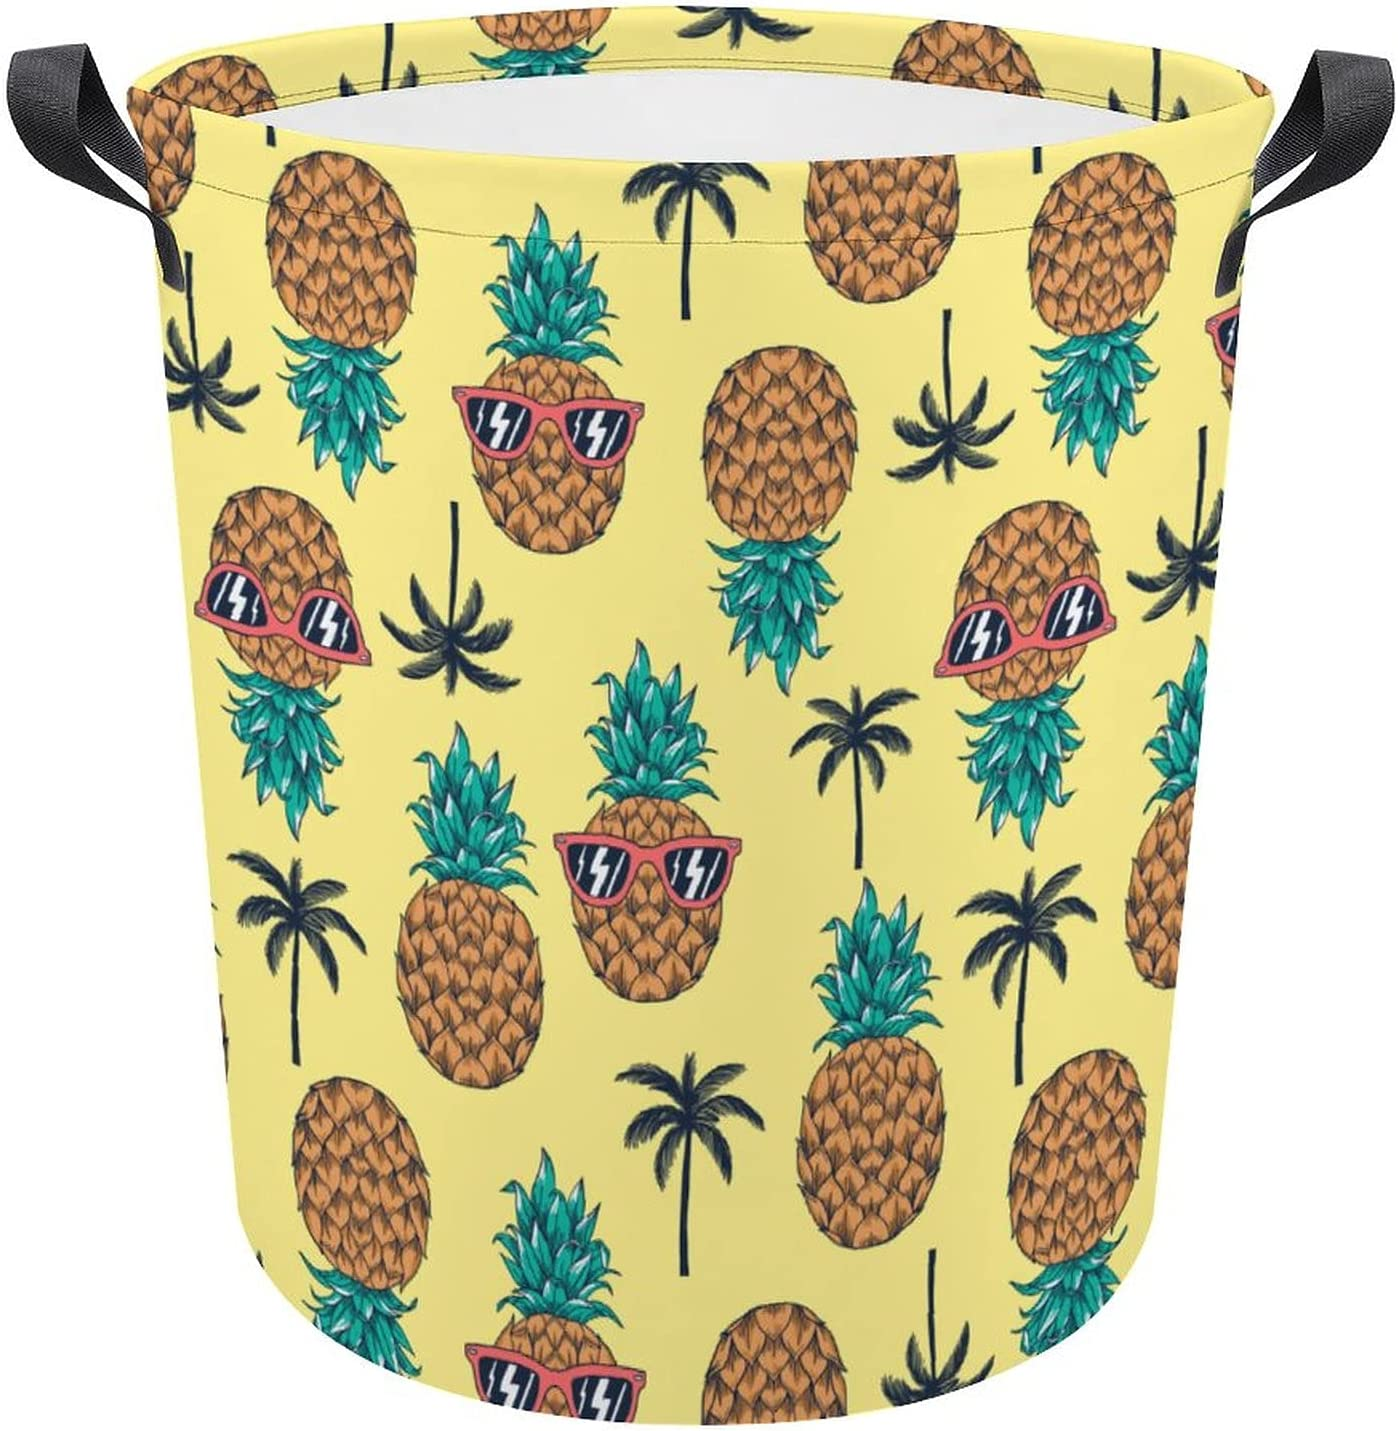 Cute Cartoon Pineapple with Sunglasses Lau Oxford Columbus Mall Don't miss the campaign Yellow Gift on